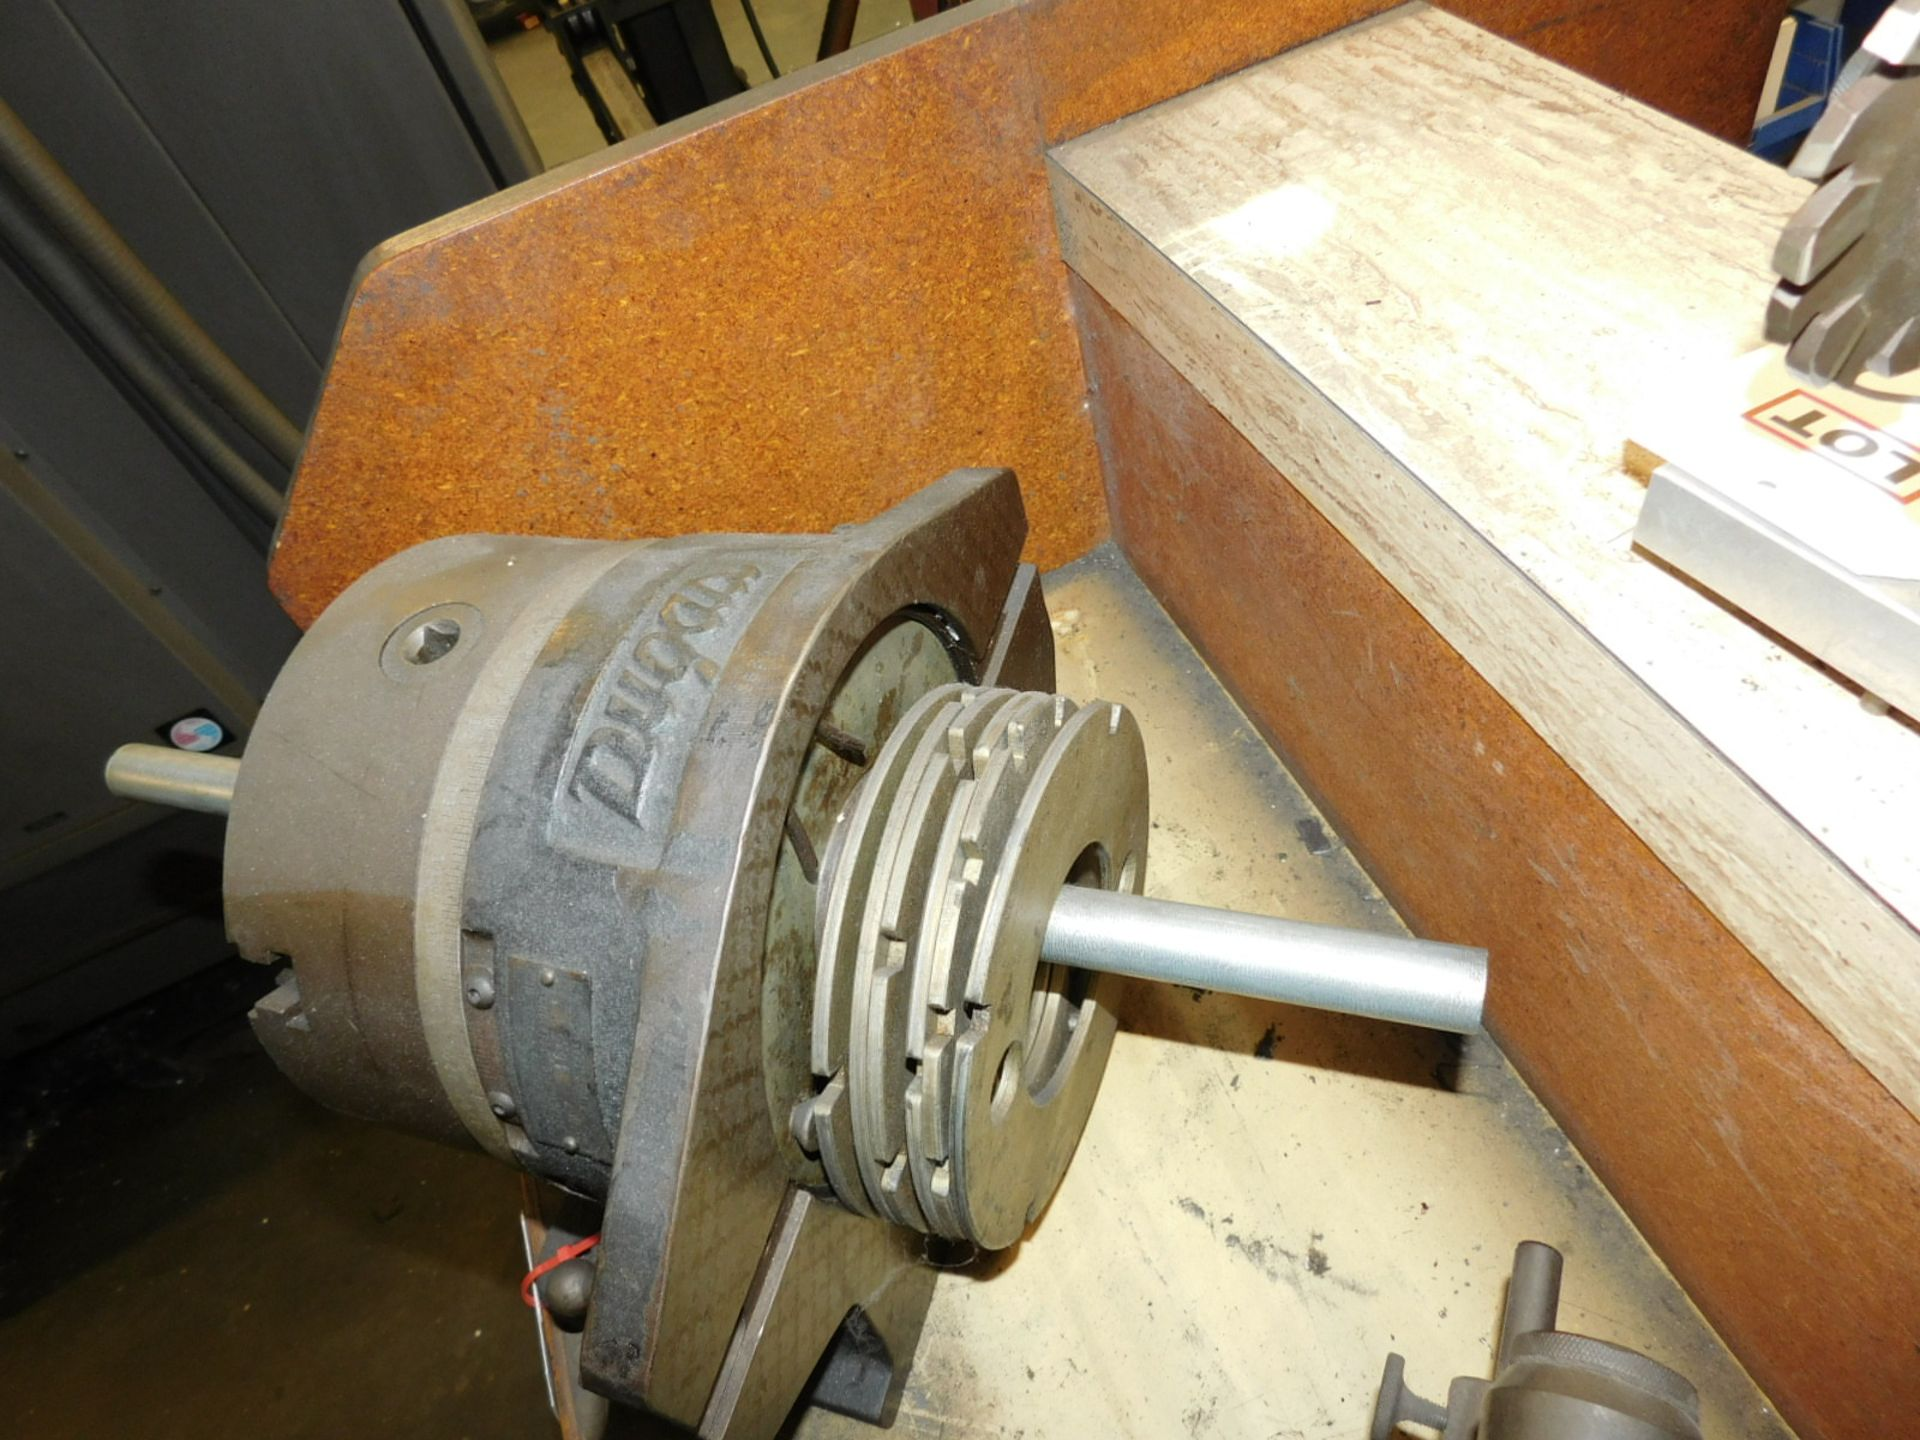 "DUGAS MACHINE WORKS/CUSHMAN CHUCKS 8-1/2"" HORIZONTAL VERTICAL ROTARY TABLE W/ 3-JAW SELF-CENTERING - Image 2 of 2"